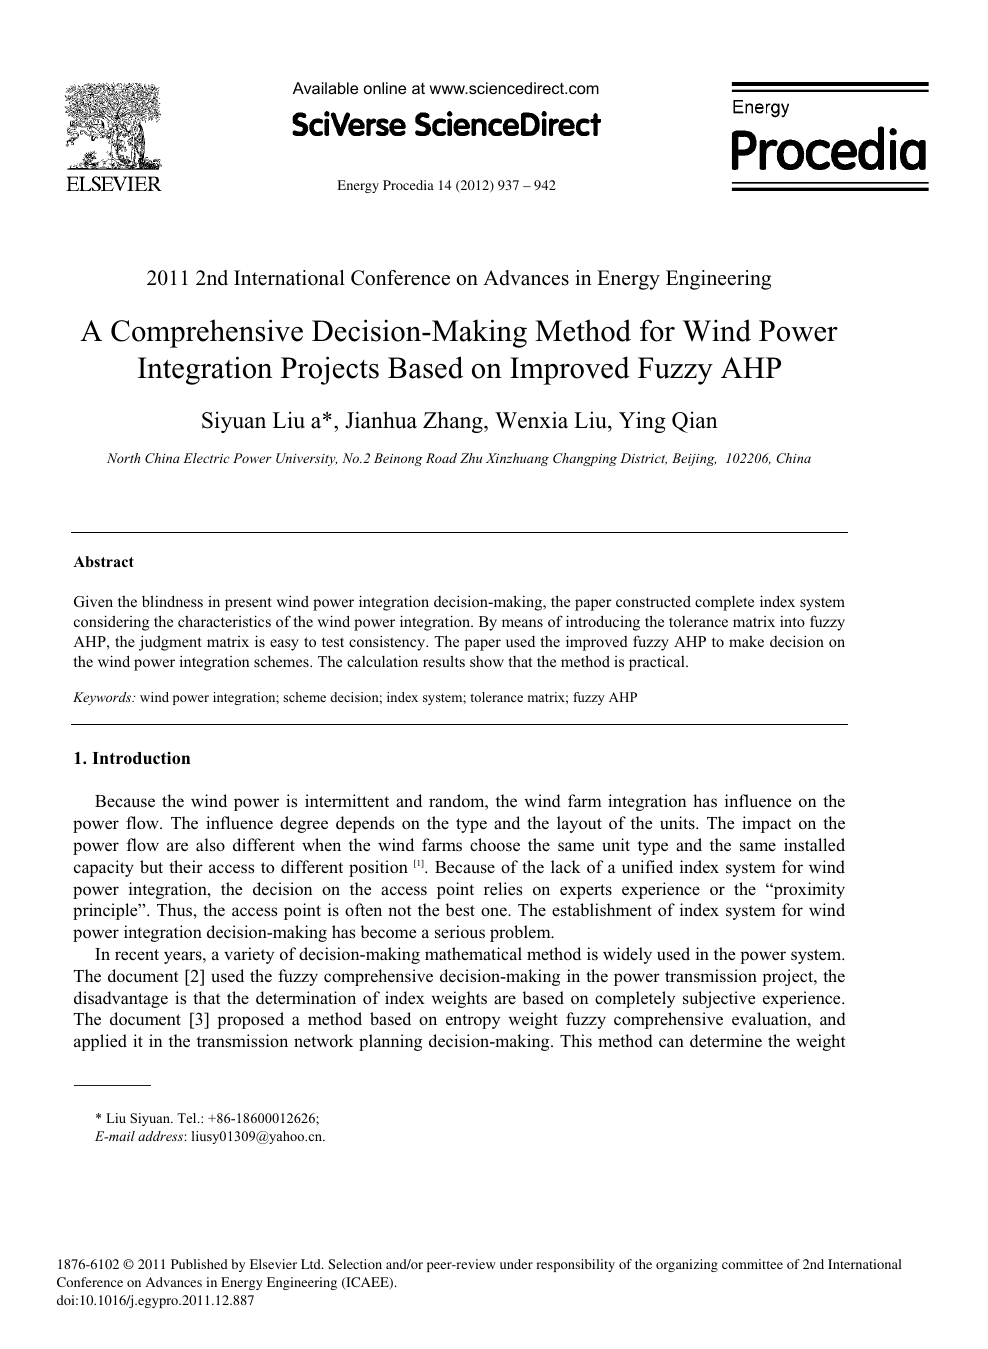 A Comprehensive Decision-Making Method for Wind Power